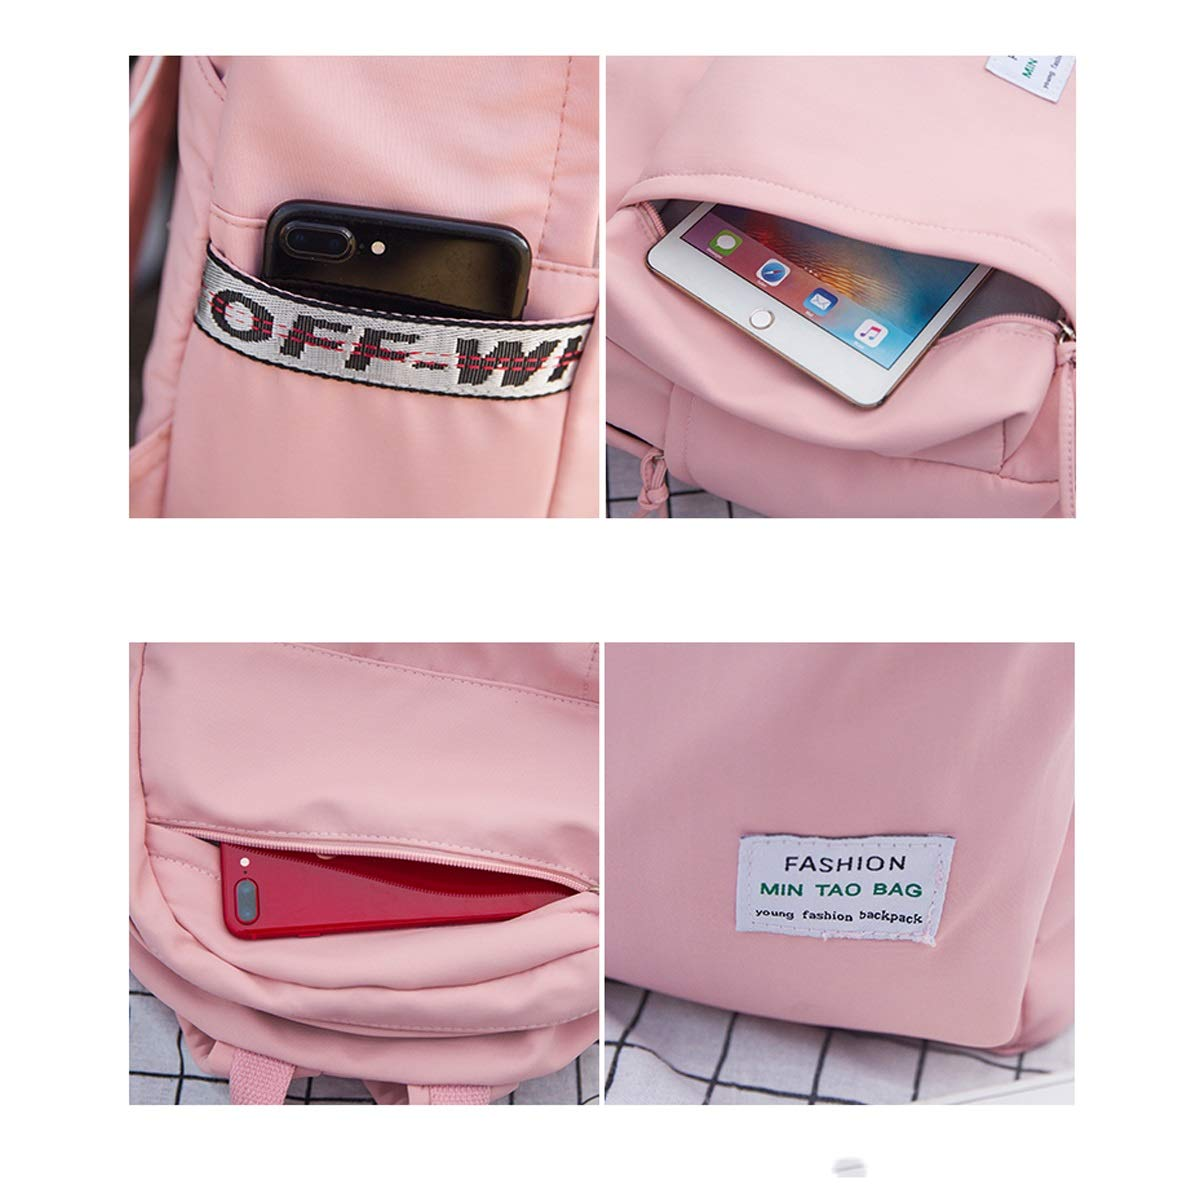 Guyuexuan The Girls Versatile Backpack is Perfect for Everyday Travel Fashion and Leisure Latest Models School Outdoor Work Four Colors Fresh Style Travel